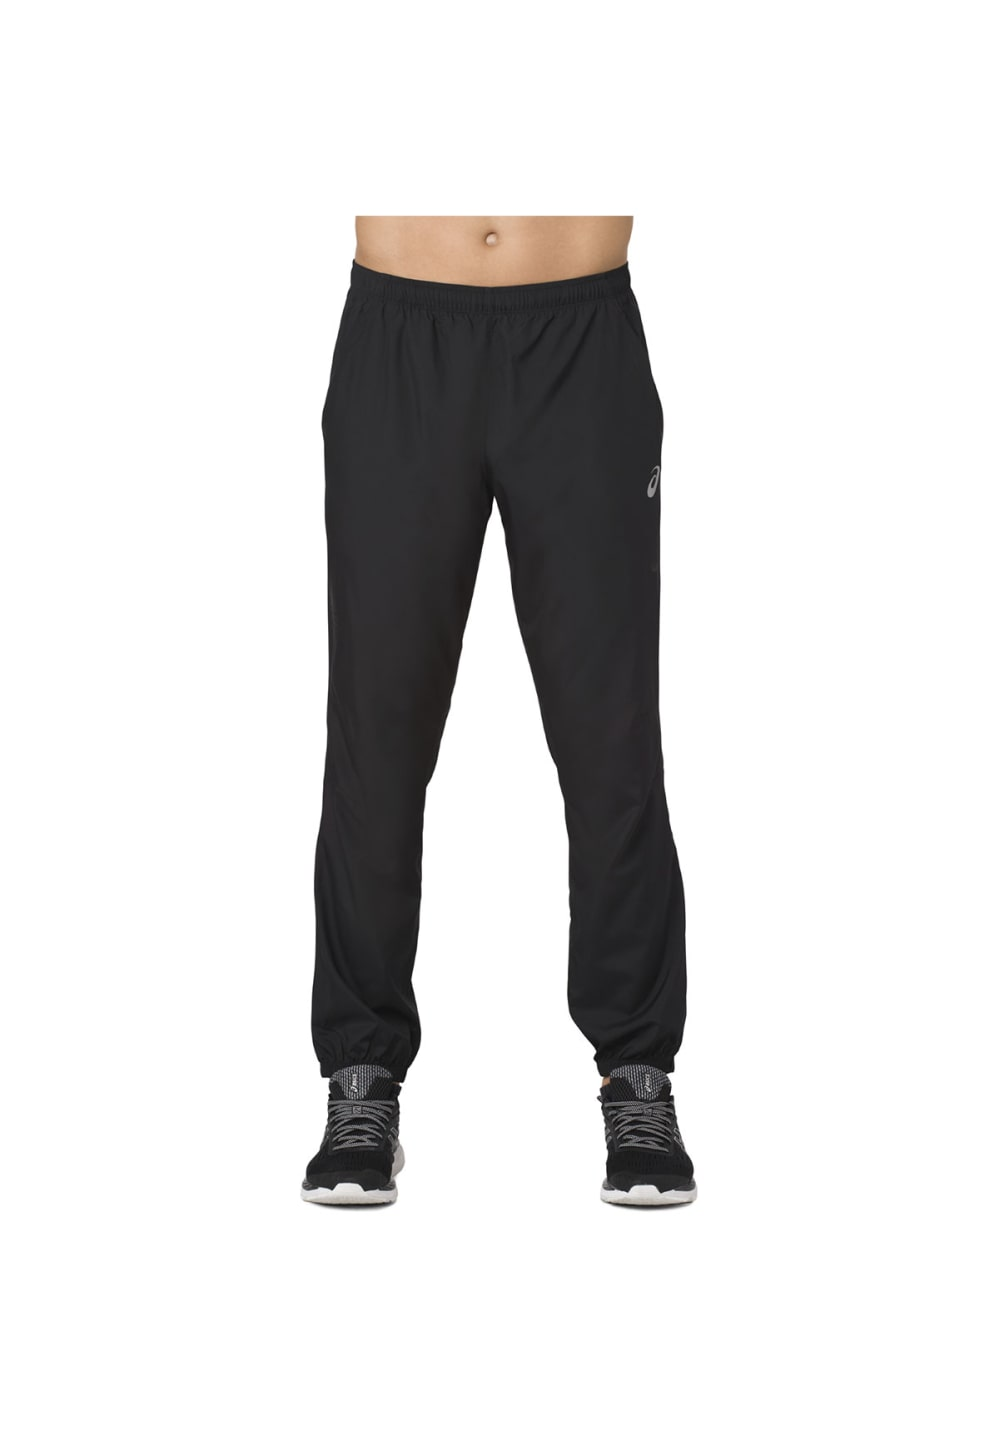 582e4c395f ... ASICS Silver Woven Pant - Running trousers for Men - Black. Back to  Overview. 1; 2; 3. Previous